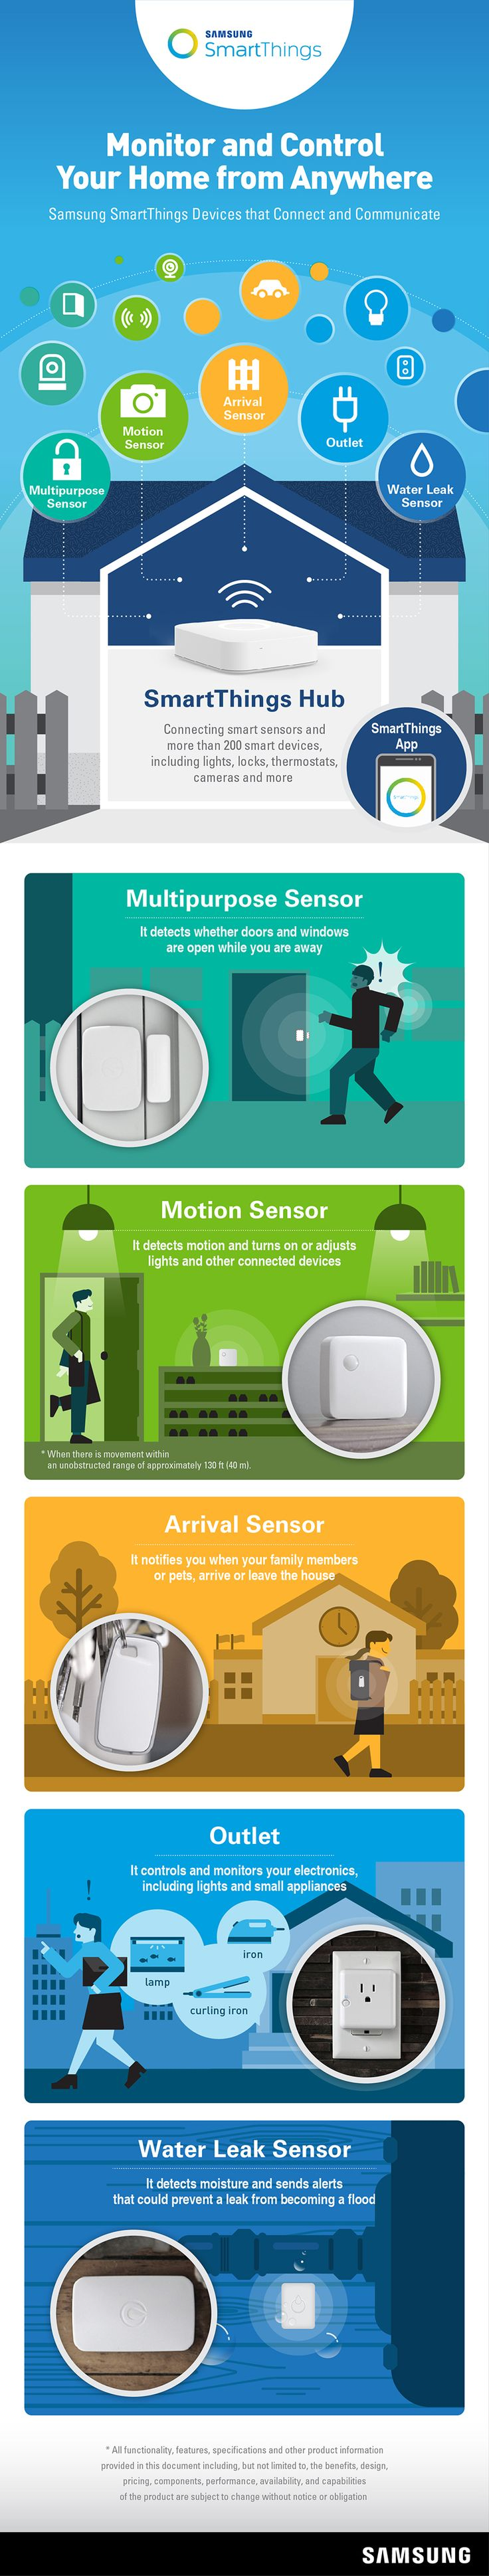 Samsung SmartThings Infographic